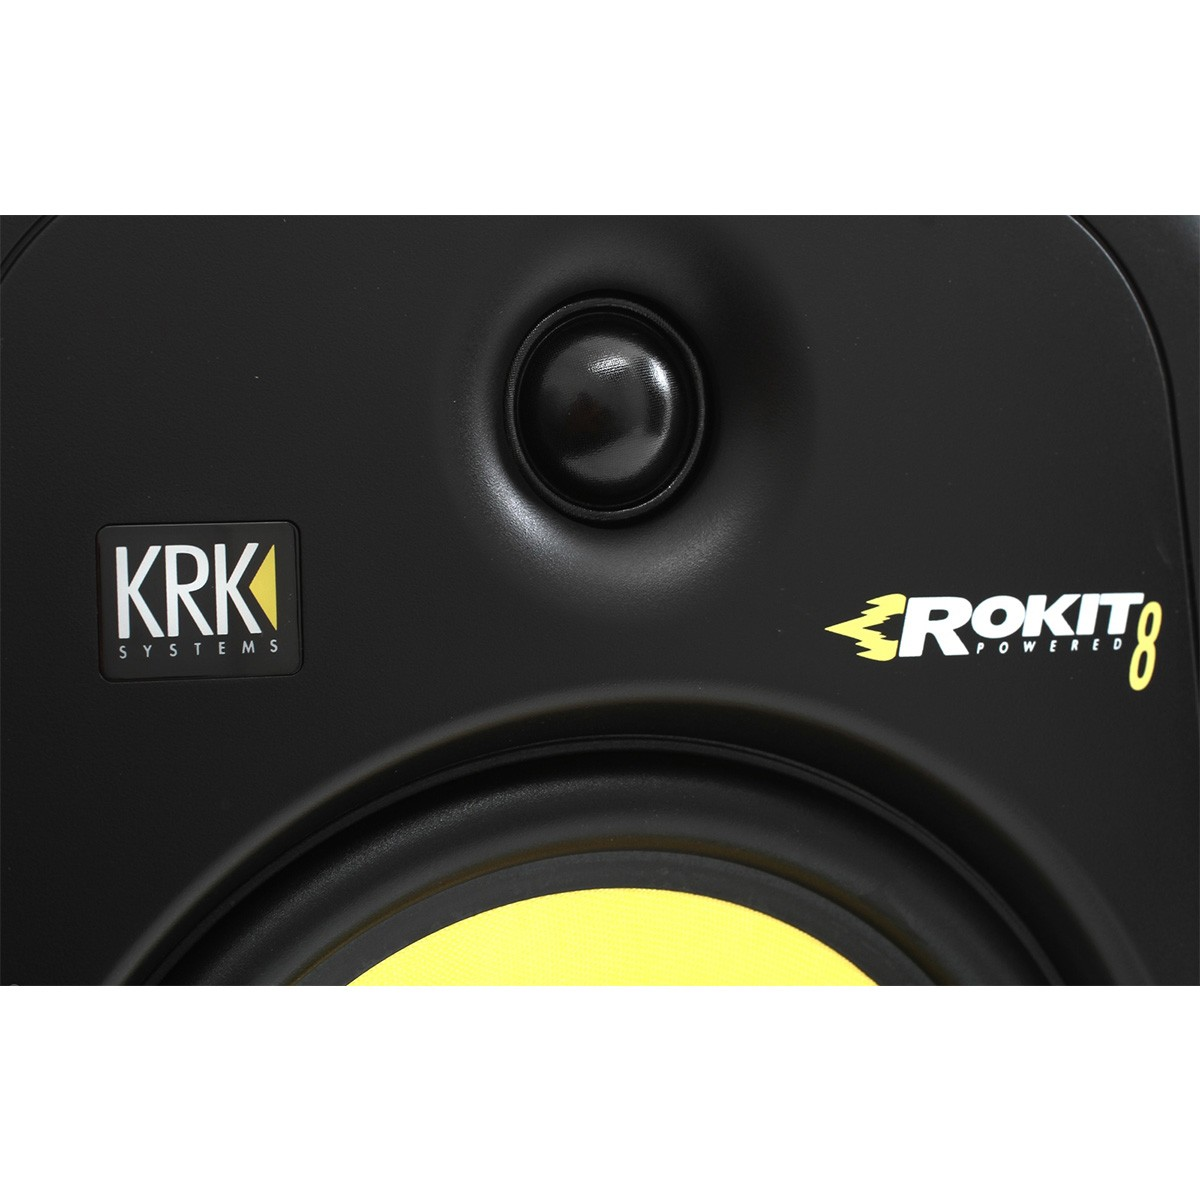 Krk RP8 G3 Rokit Powered Monitor de Áudio Referencia para Estudio, Preto, 220v, Par